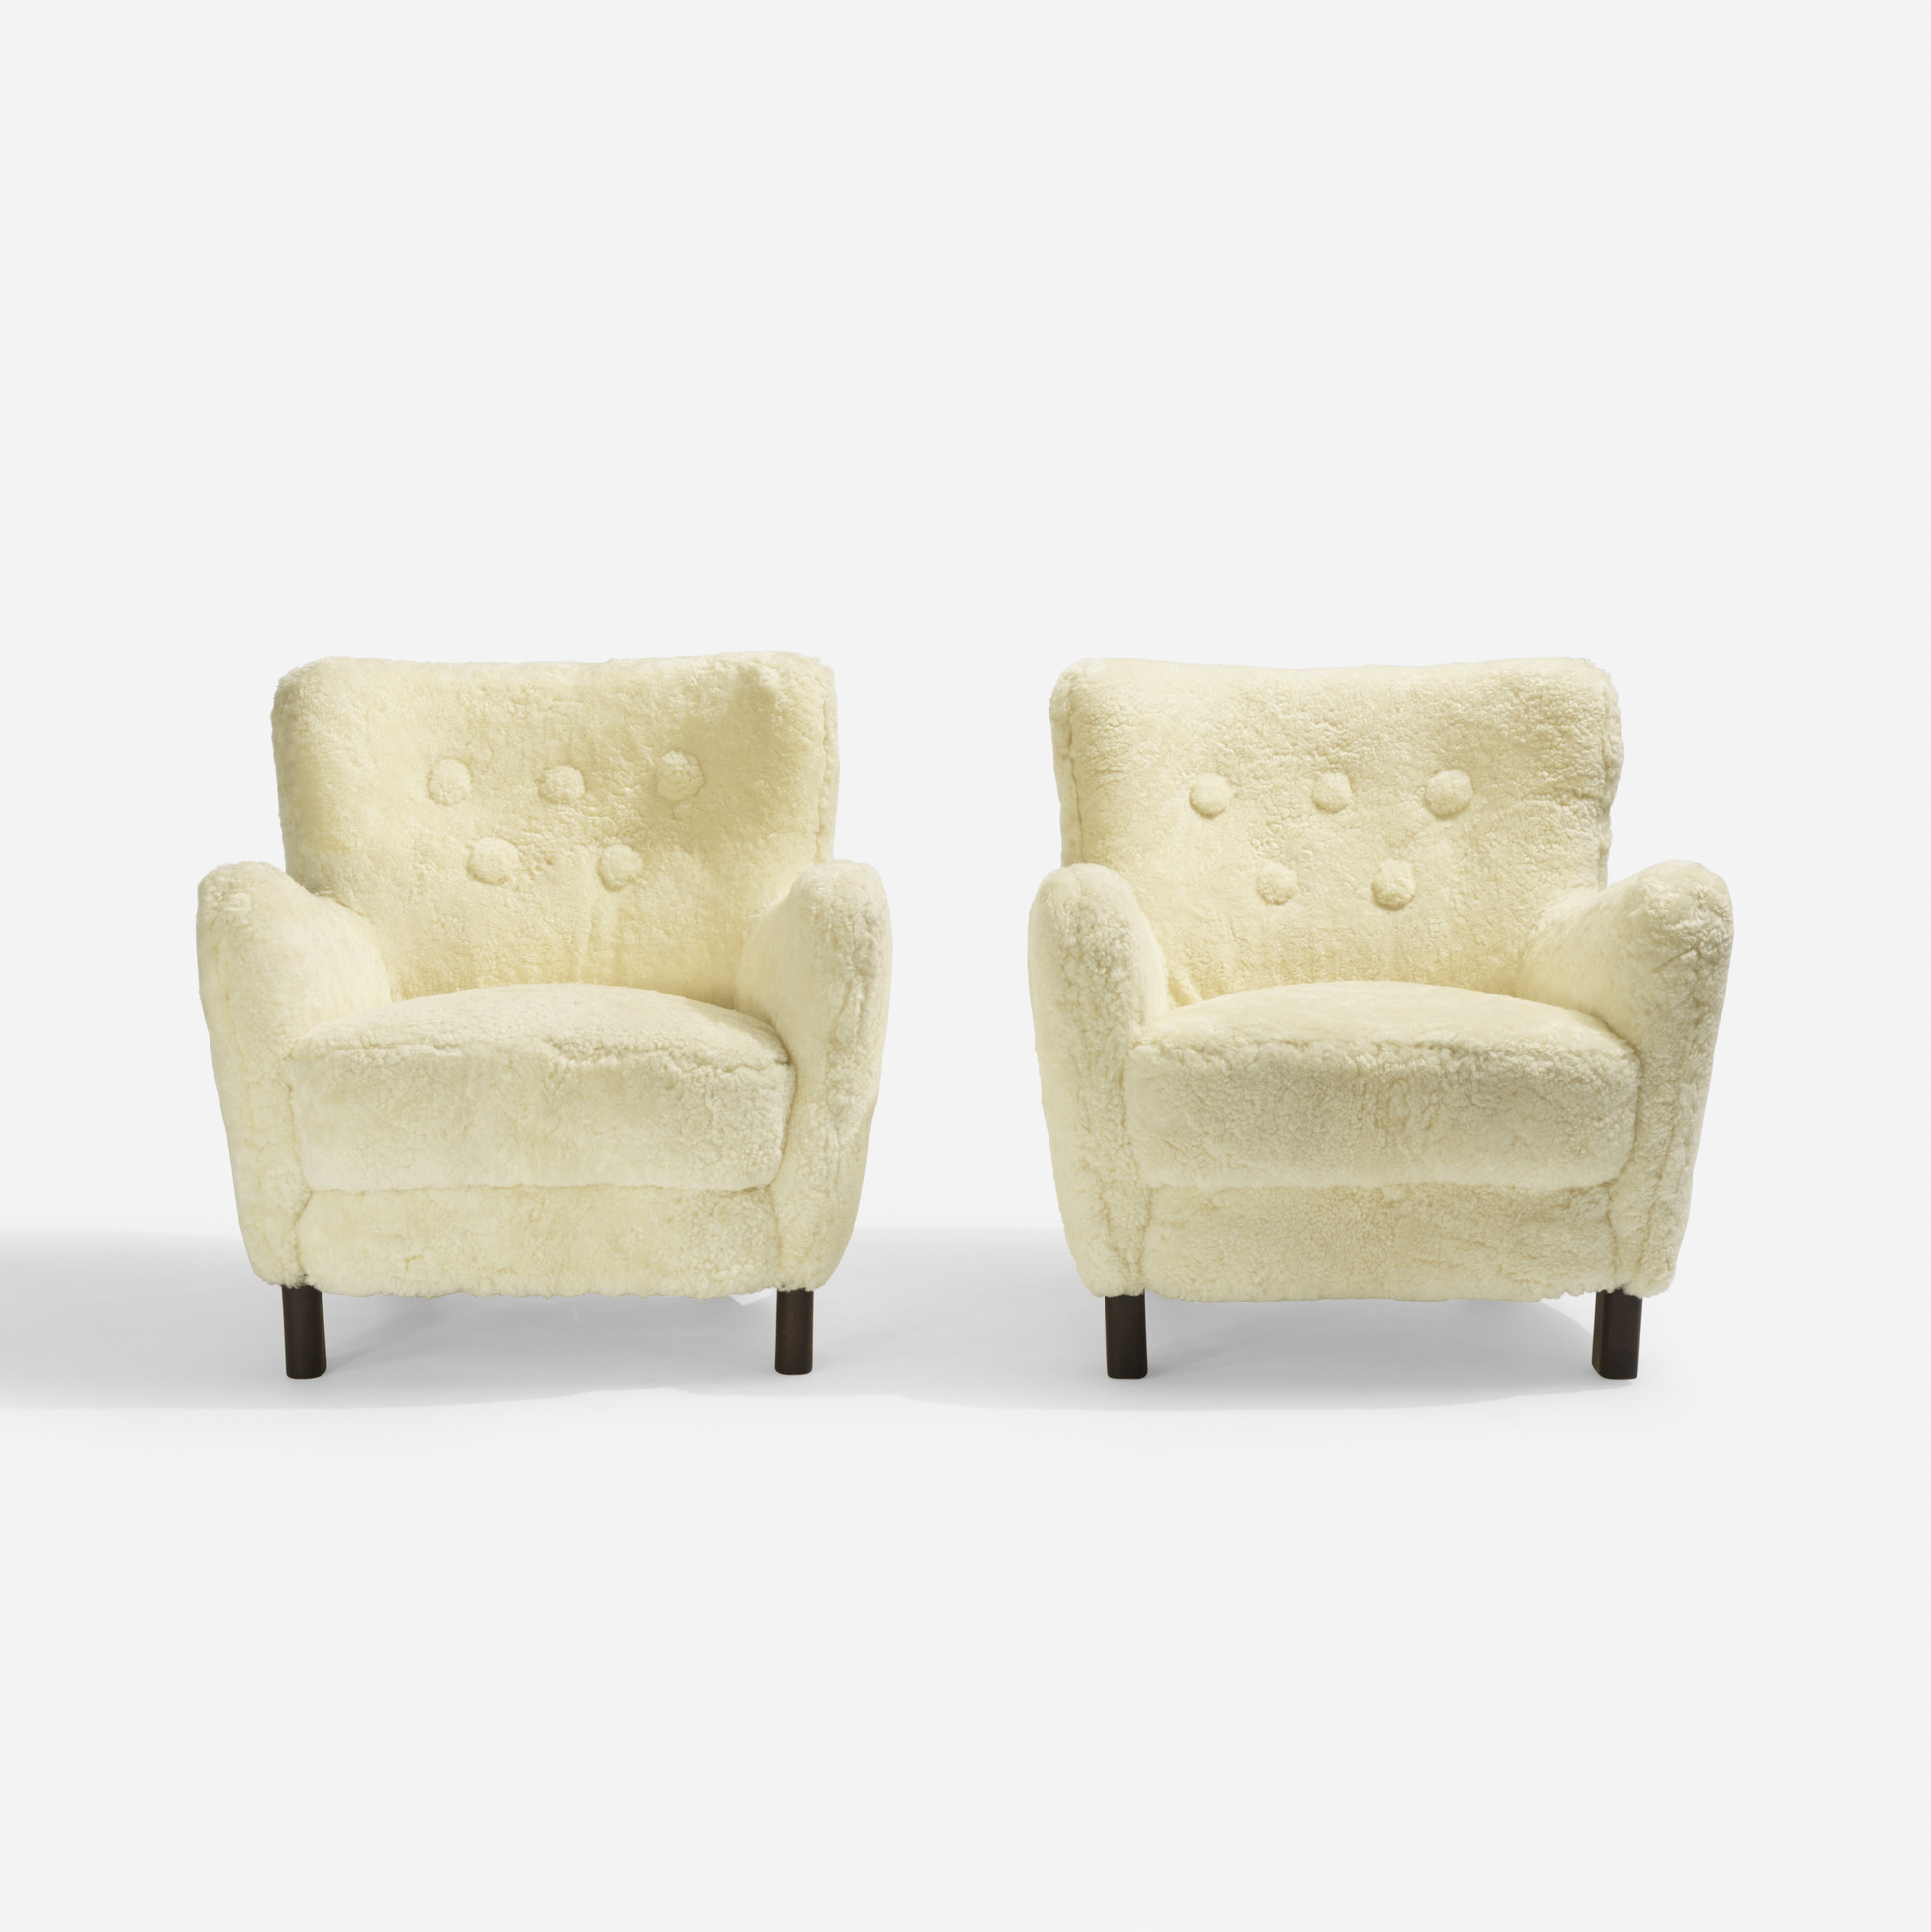 157: Fritz Hansen / lounge chairs model 1669, pair (2 of 3)